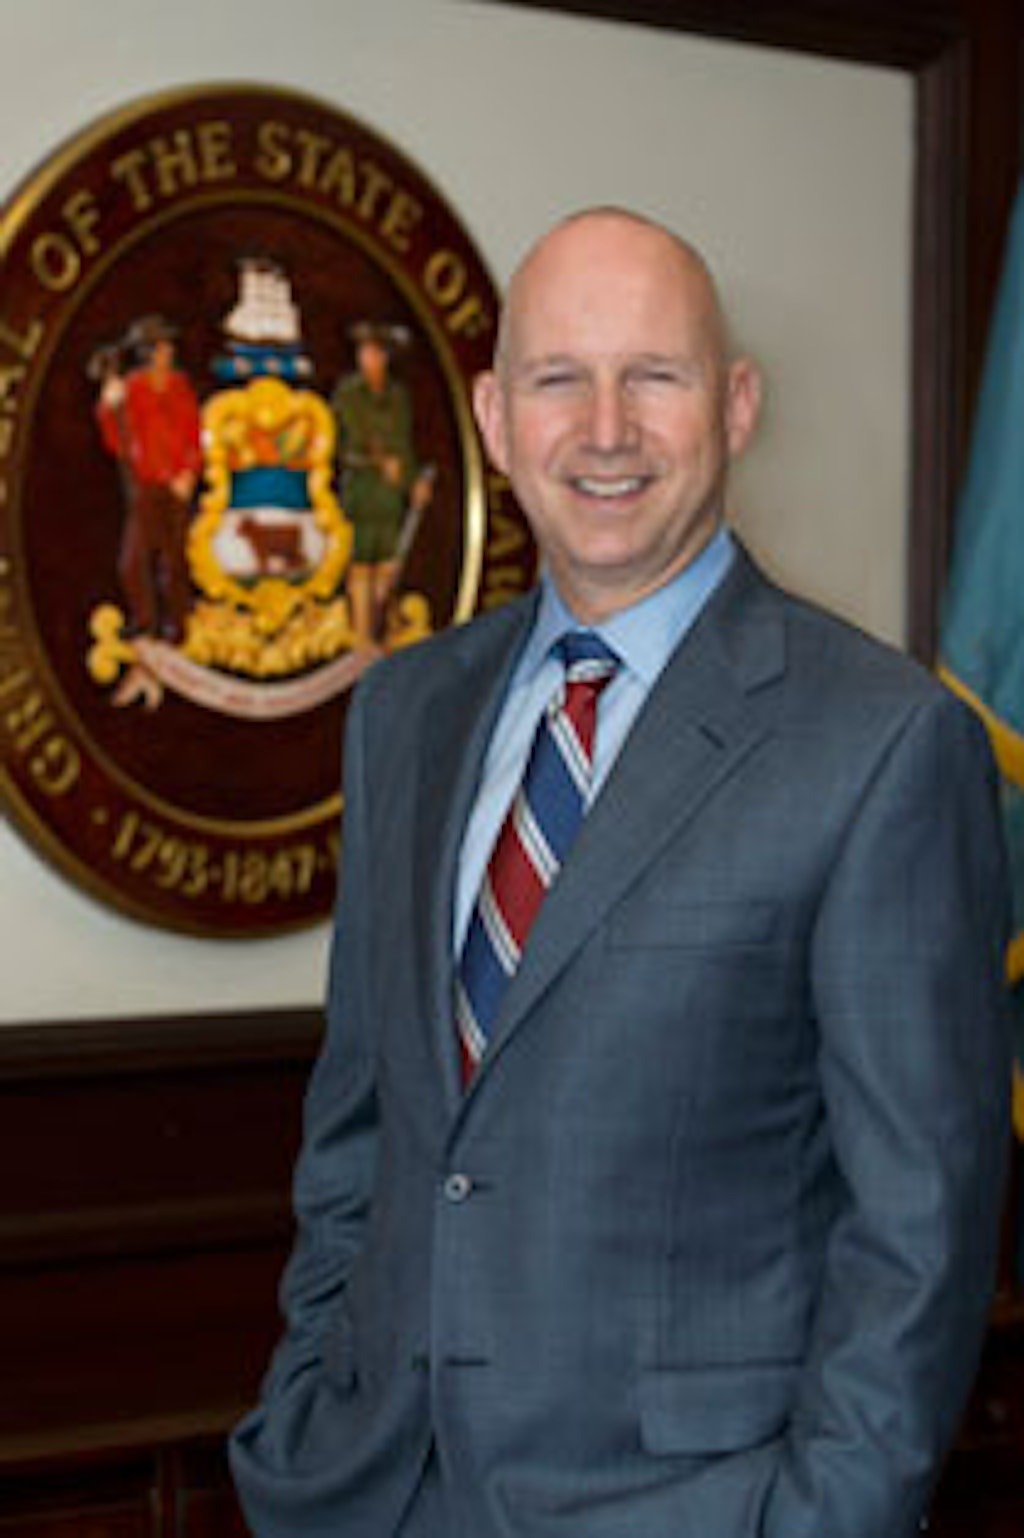 Delaware Governor Announces Support for Death Penalty Repeal